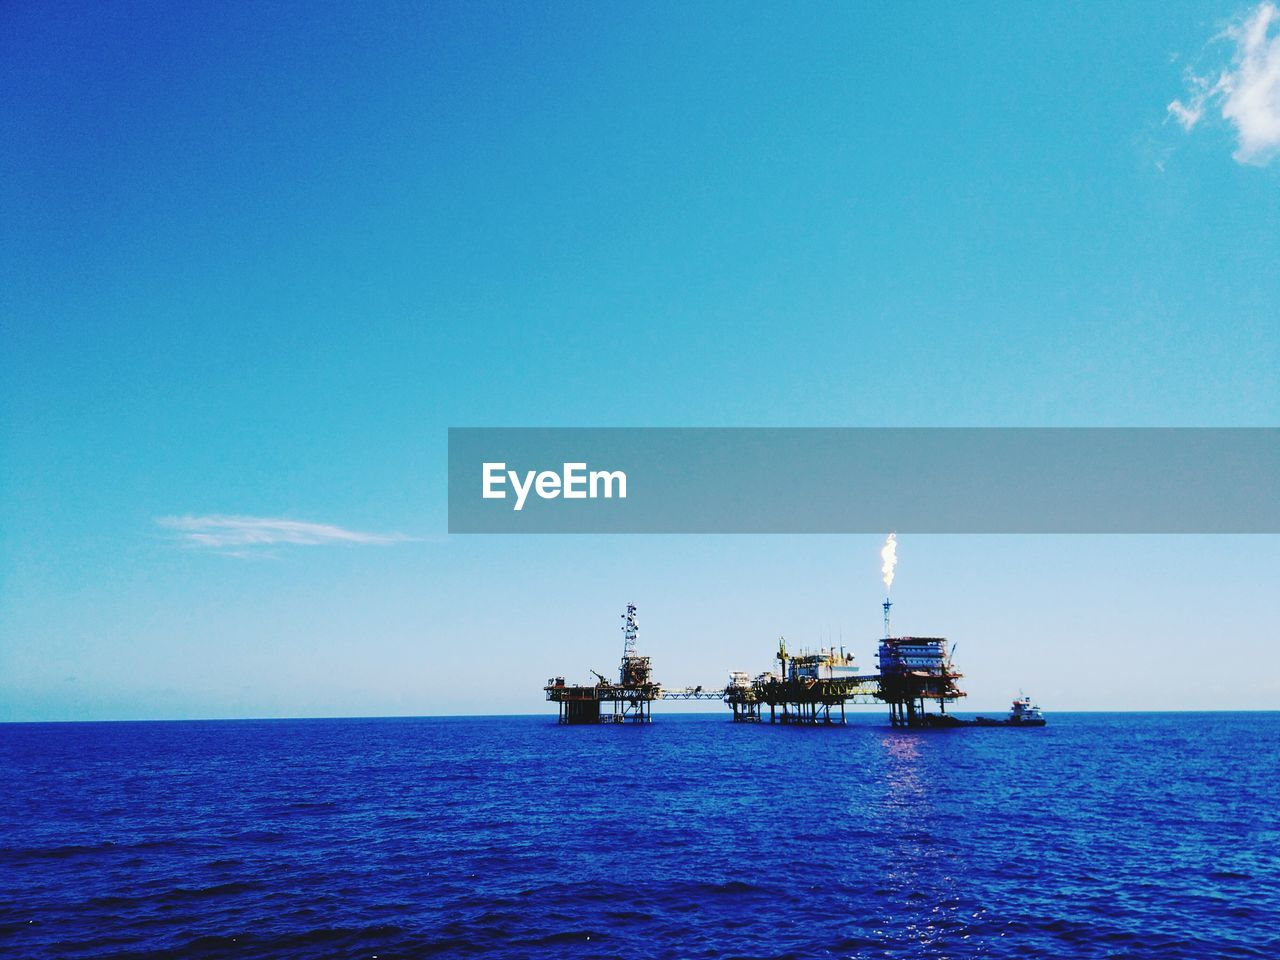 sea, water, sky, oil industry, offshore platform, fuel and power generation, blue, copy space, drilling rig, industry, fossil fuel, oil, nature, horizon over water, scenics - nature, horizon, beauty in nature, crude oil, no people, outdoors